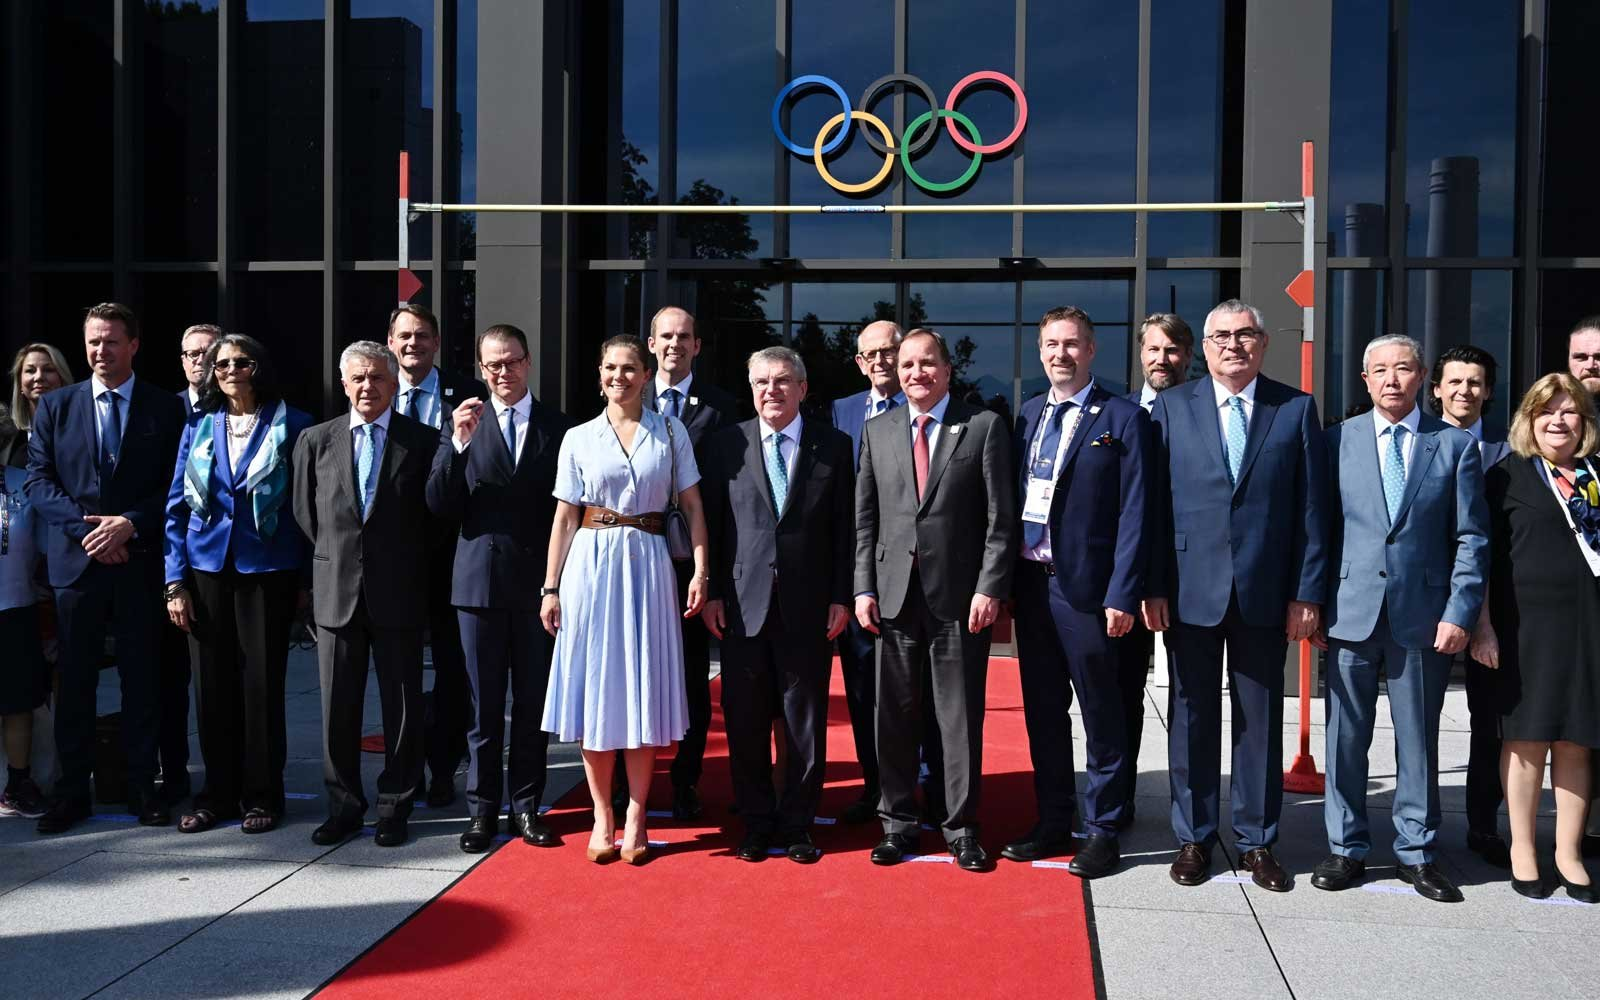 The Location of the 2026 Winter Olympics Has Been Announced